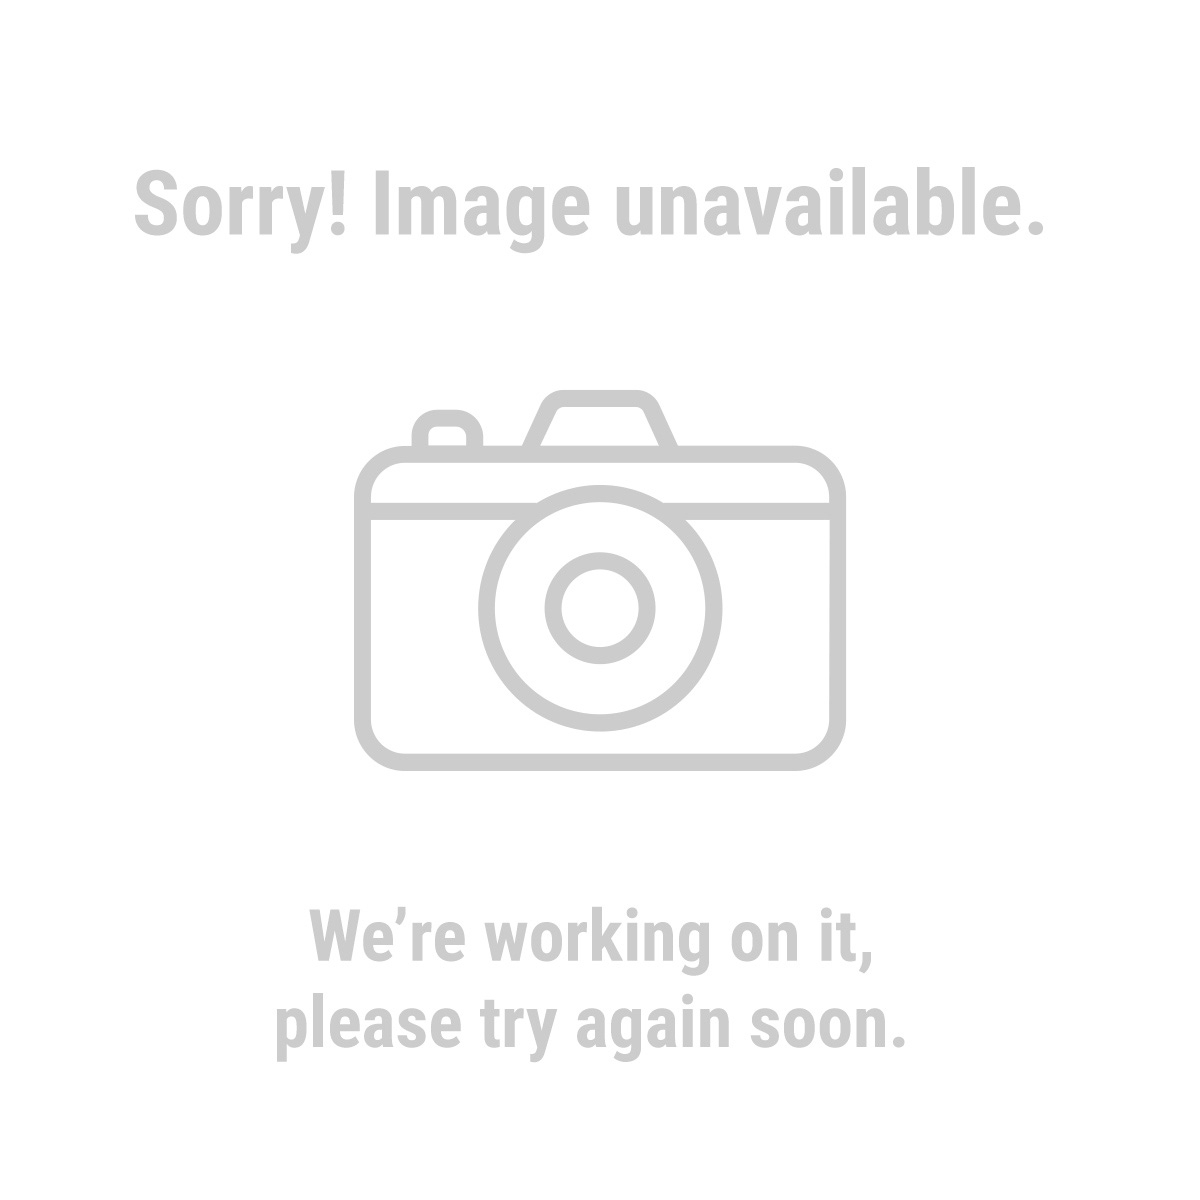 Chicago Electric Power Tools Professional Series 97360 1-1/2 HP Bridge Tile Saw with Stand